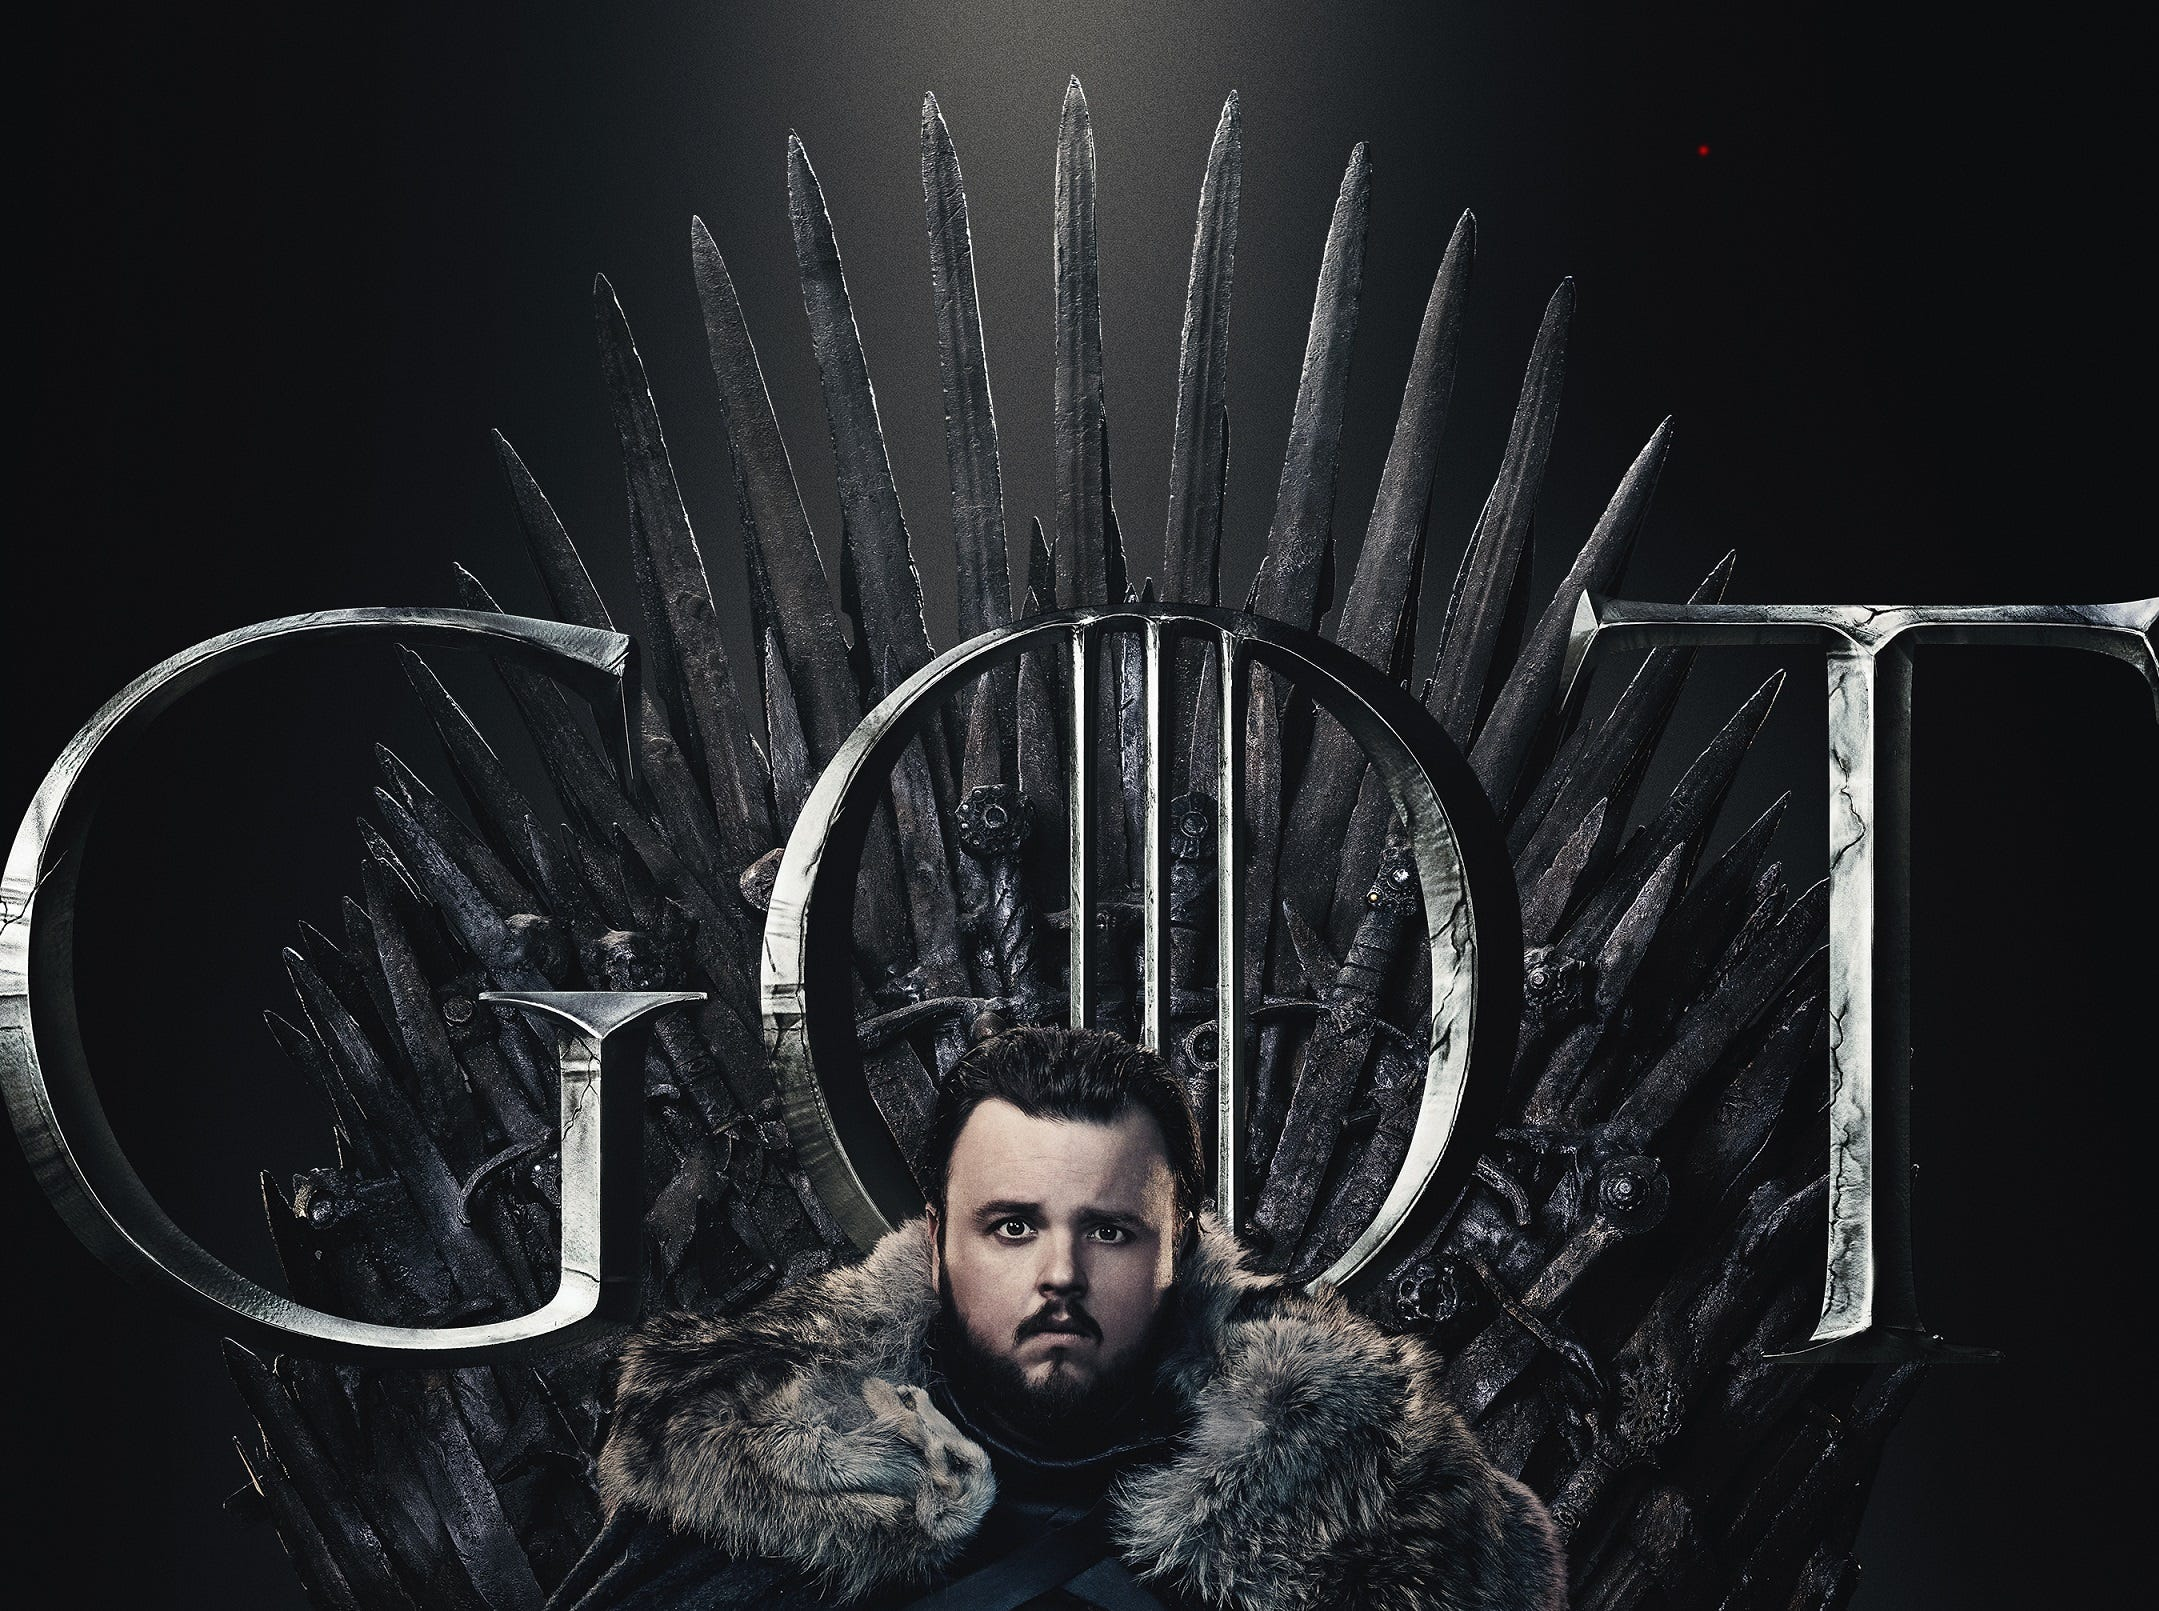 Sam (John Bradley) discovered that Dany and Jon are aunt and nephew, and his look of concern mirrors fans who then saw the pair get romantically involved.